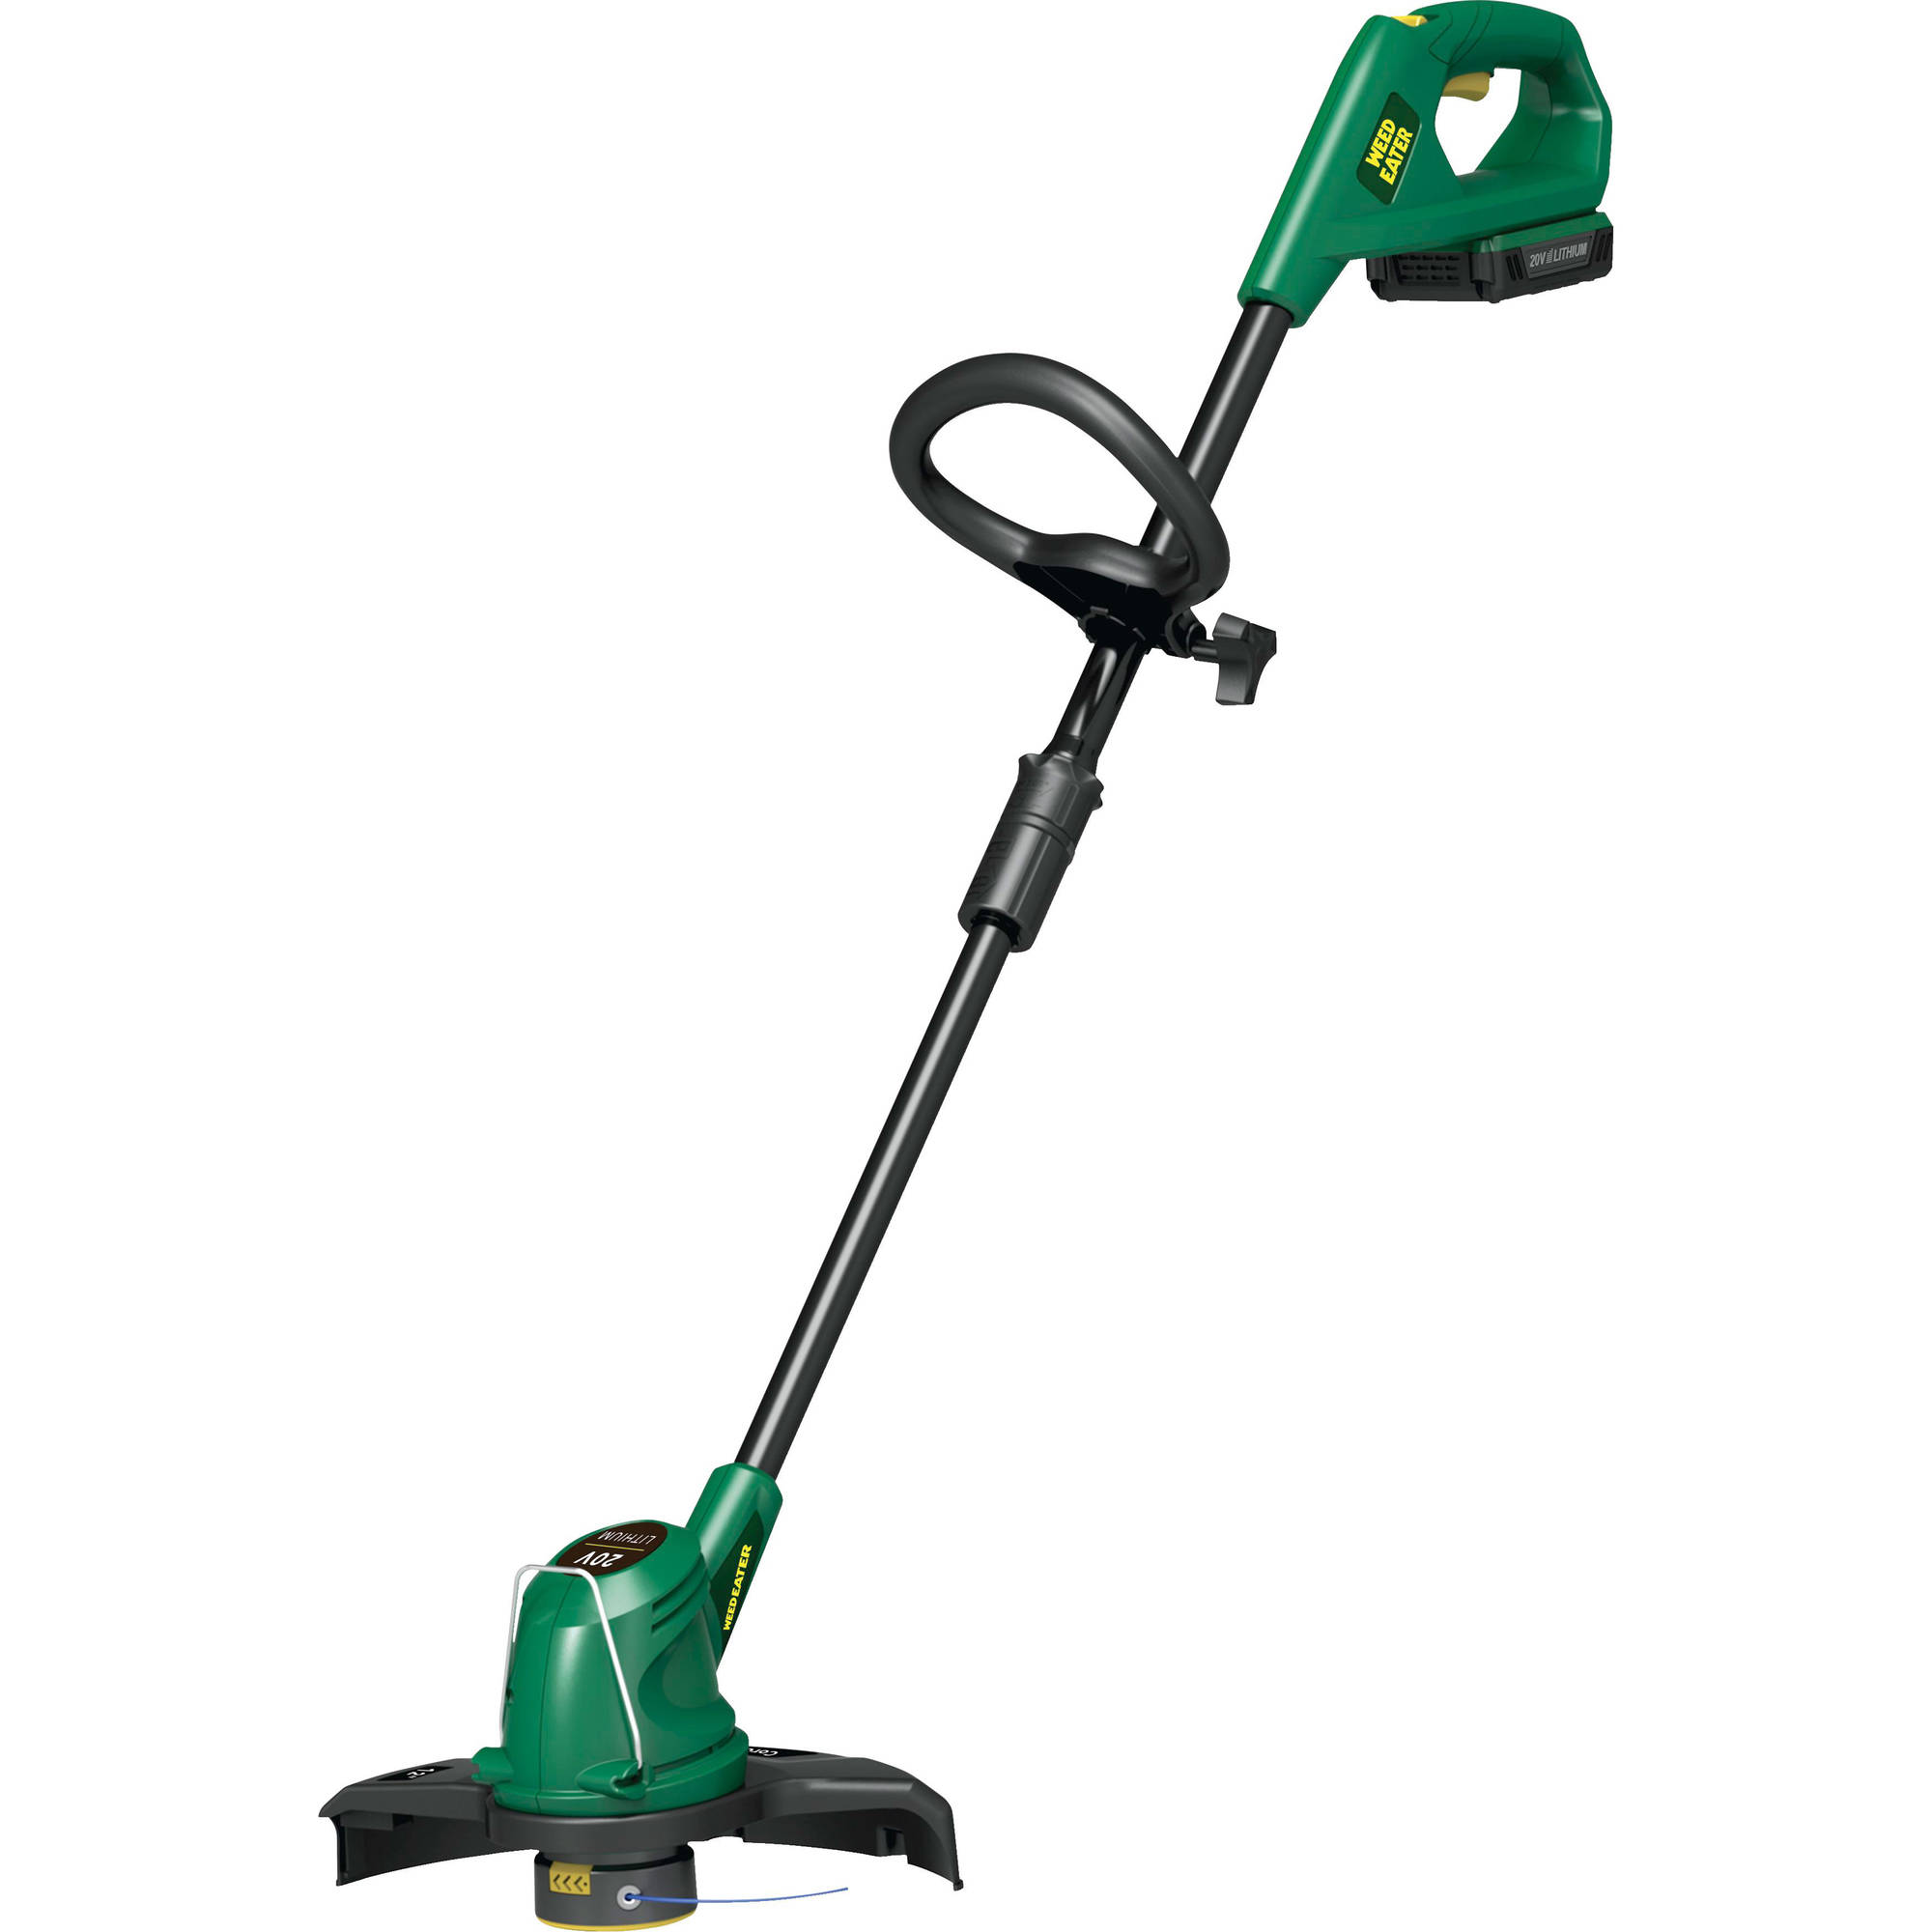 Weed Eater WE20VT 20V LithiumIon Rechargeable Battery Powered 12